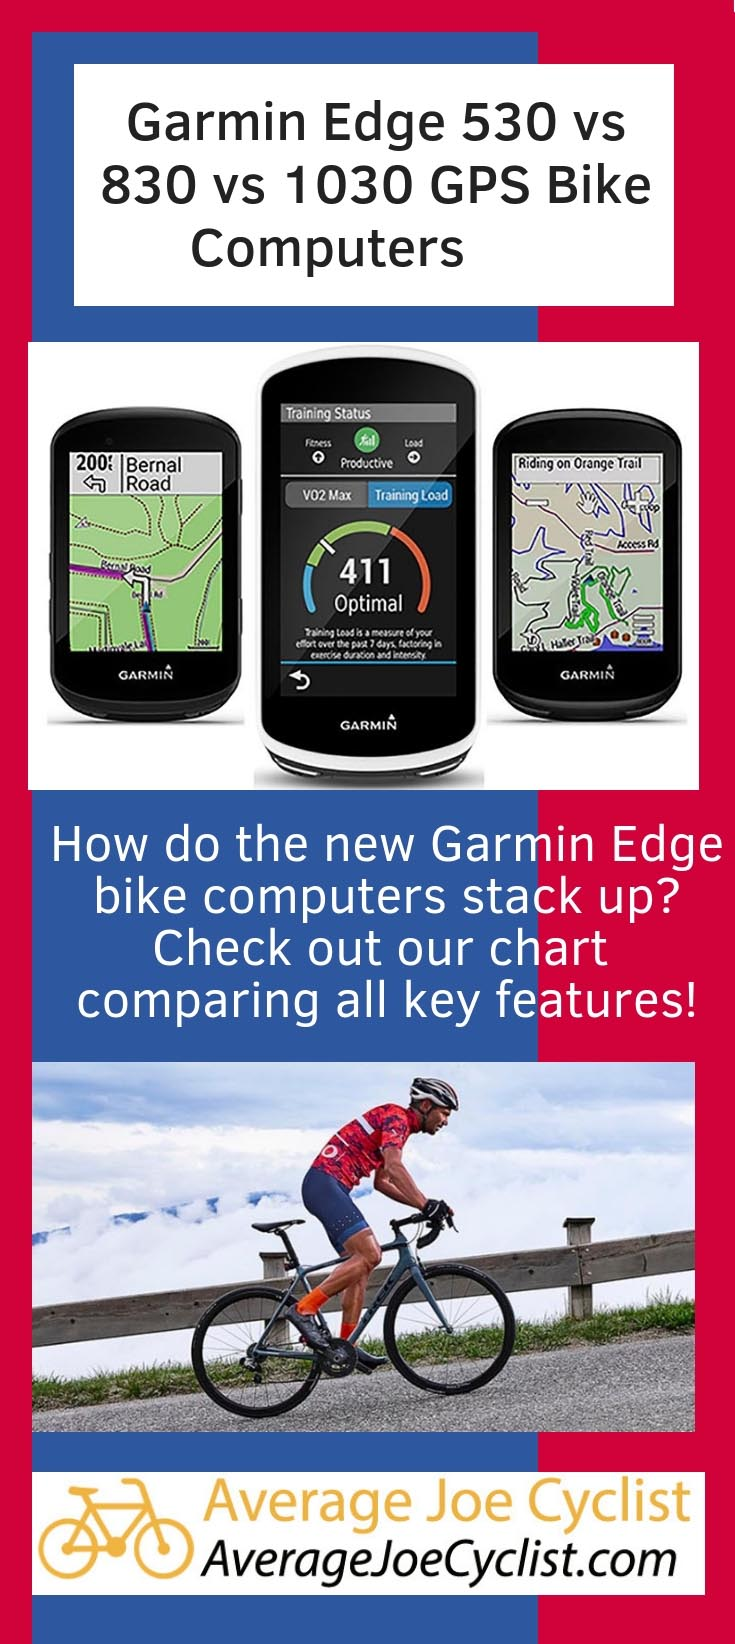 Garmin Edge 530 vs 830 vs 1030 GPS Bike Computers